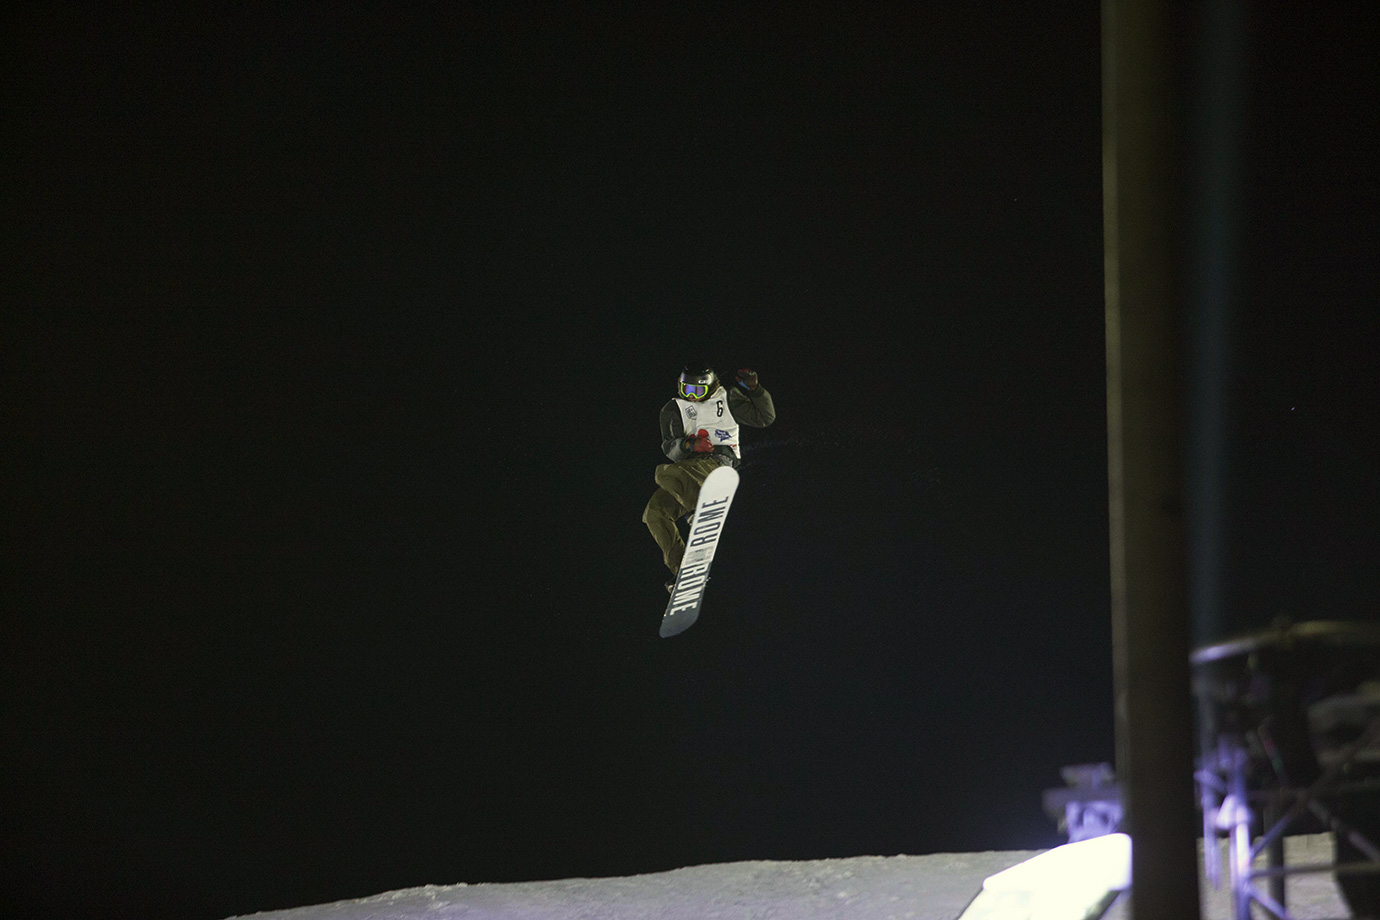 Eric Willet just manages to pull his board around on the 1260 in time to stick the landing. McMorris's injury did not deter the riders from doing big on the jump, despite the hard landing.